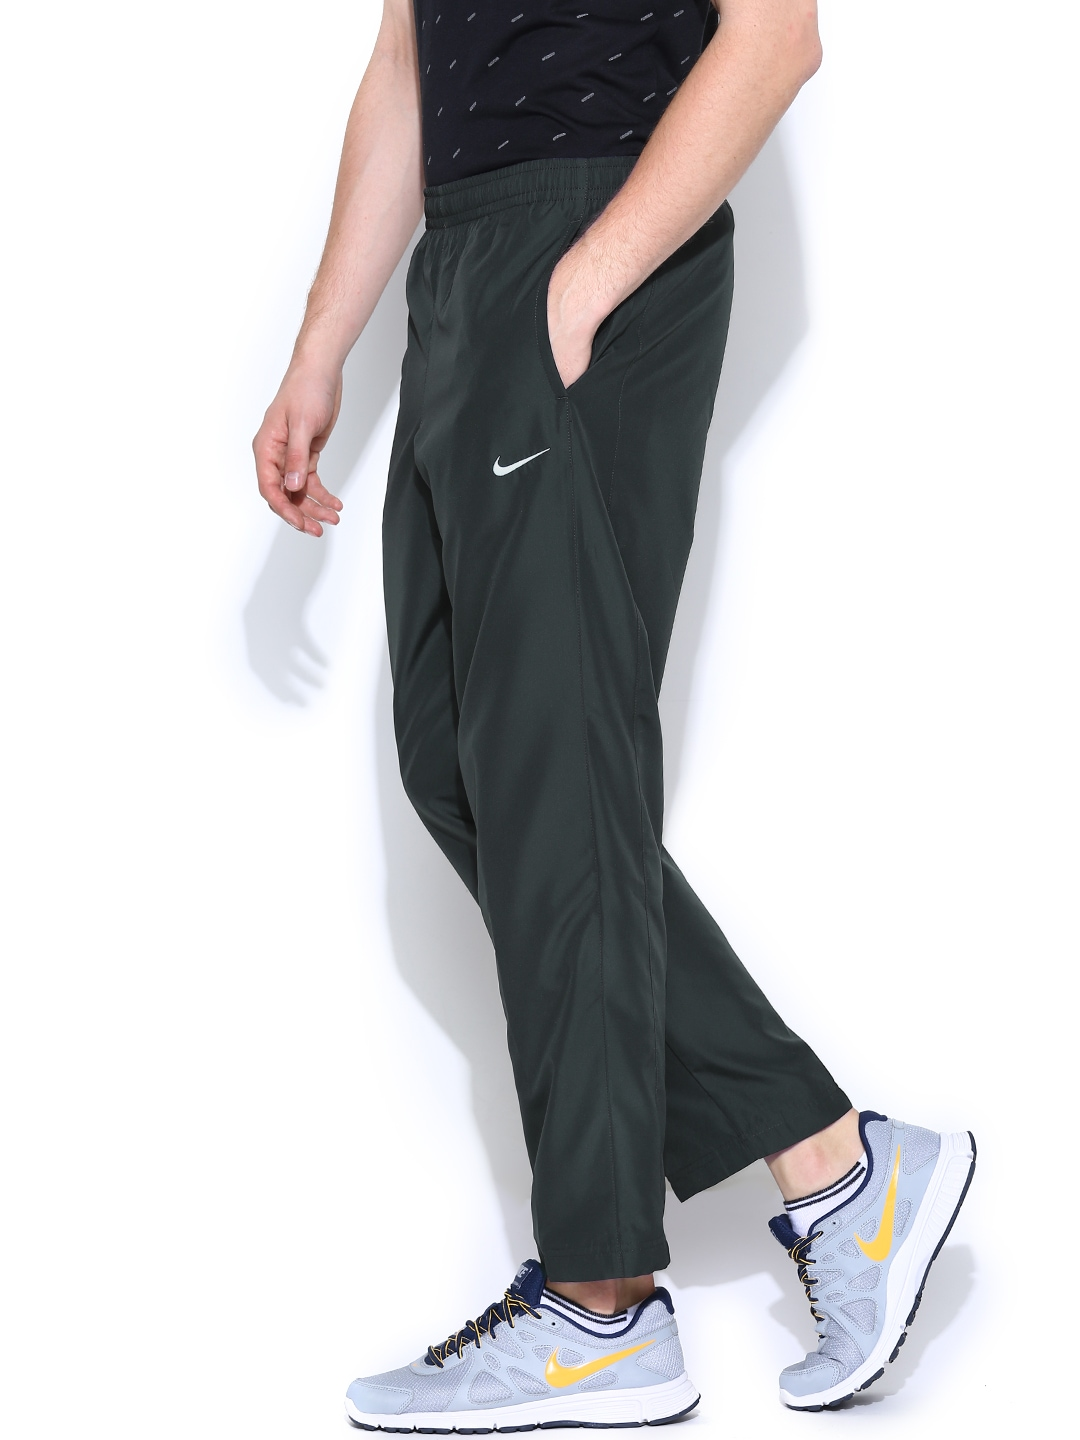 Nike track pant online shopping